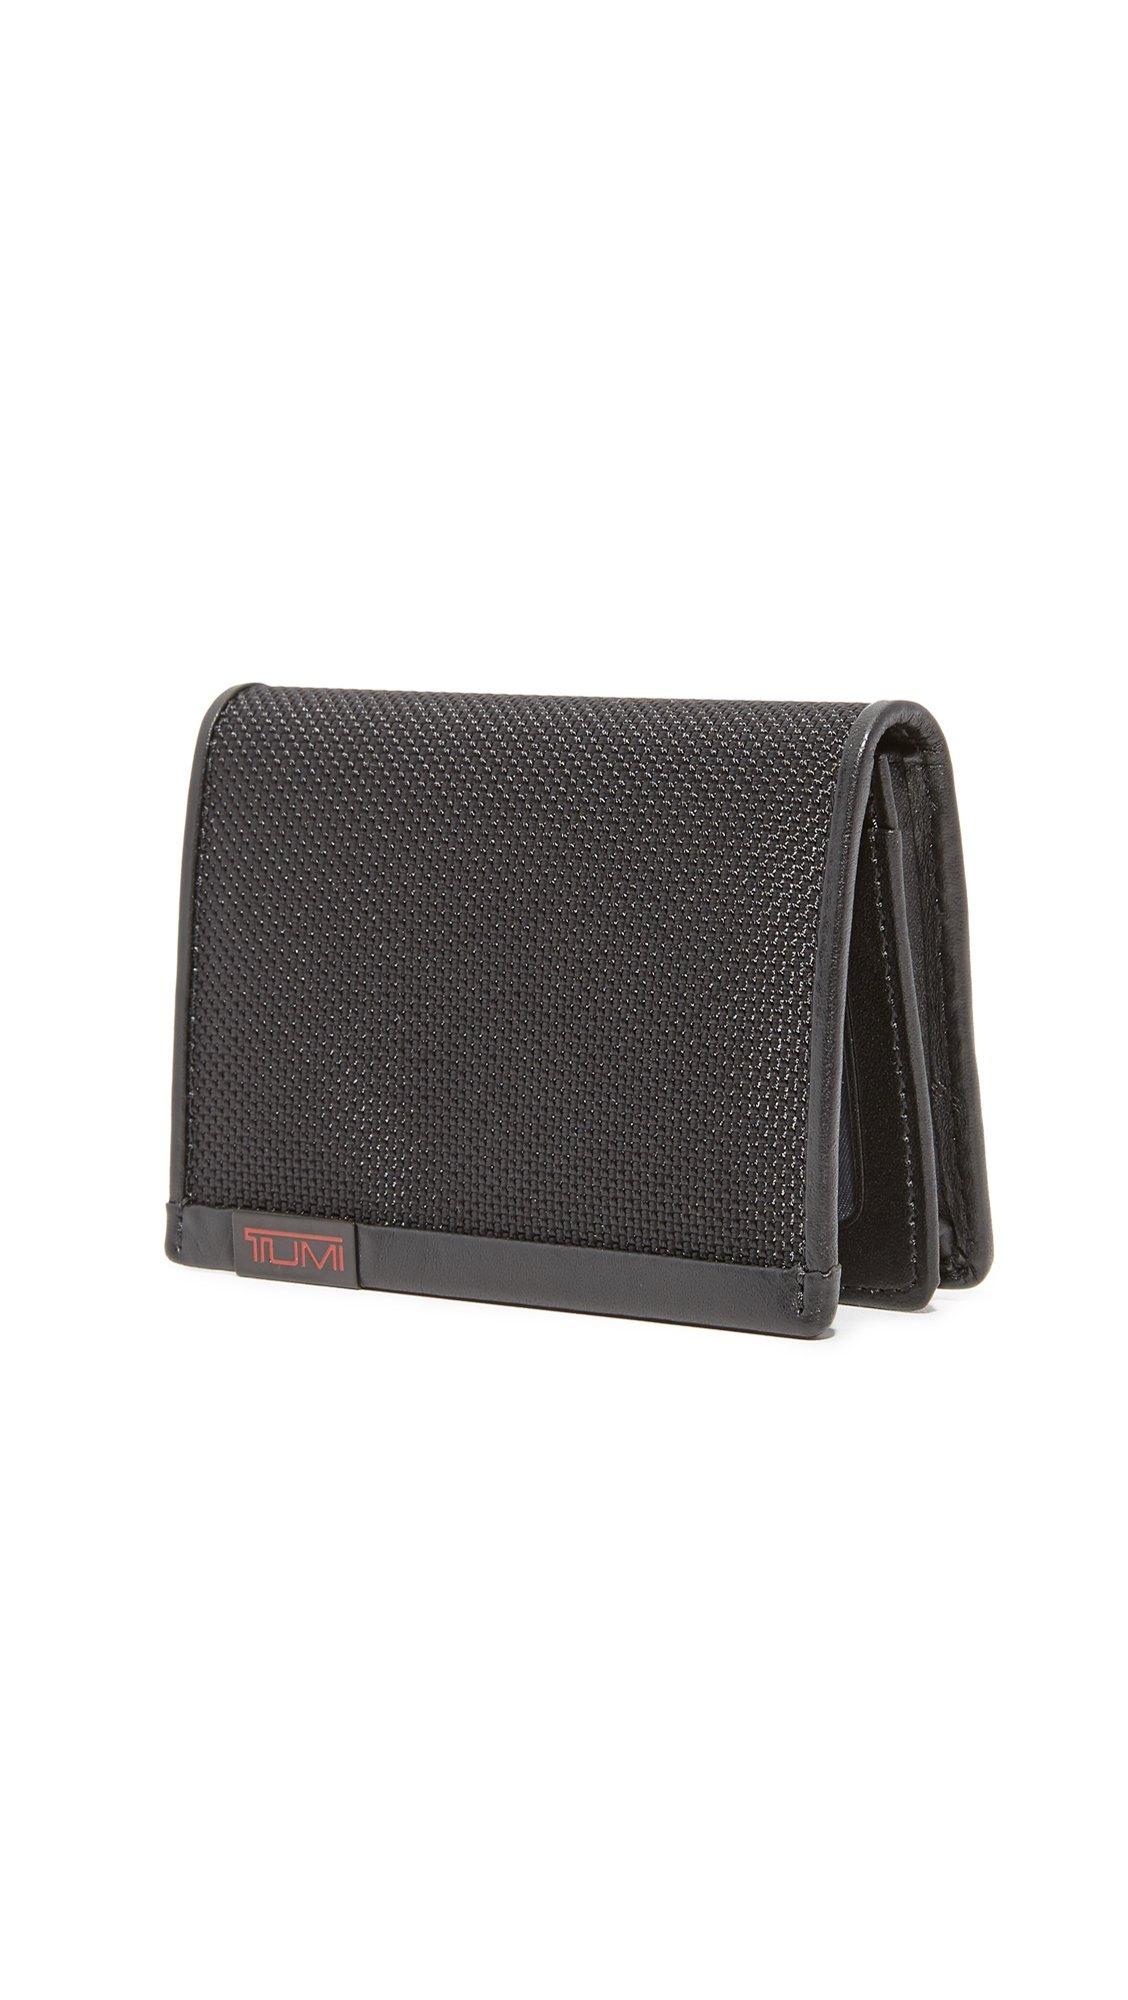 Tumi Alpha Gusseted Card Case with ID,Black,one size by Tumi (Image #2)